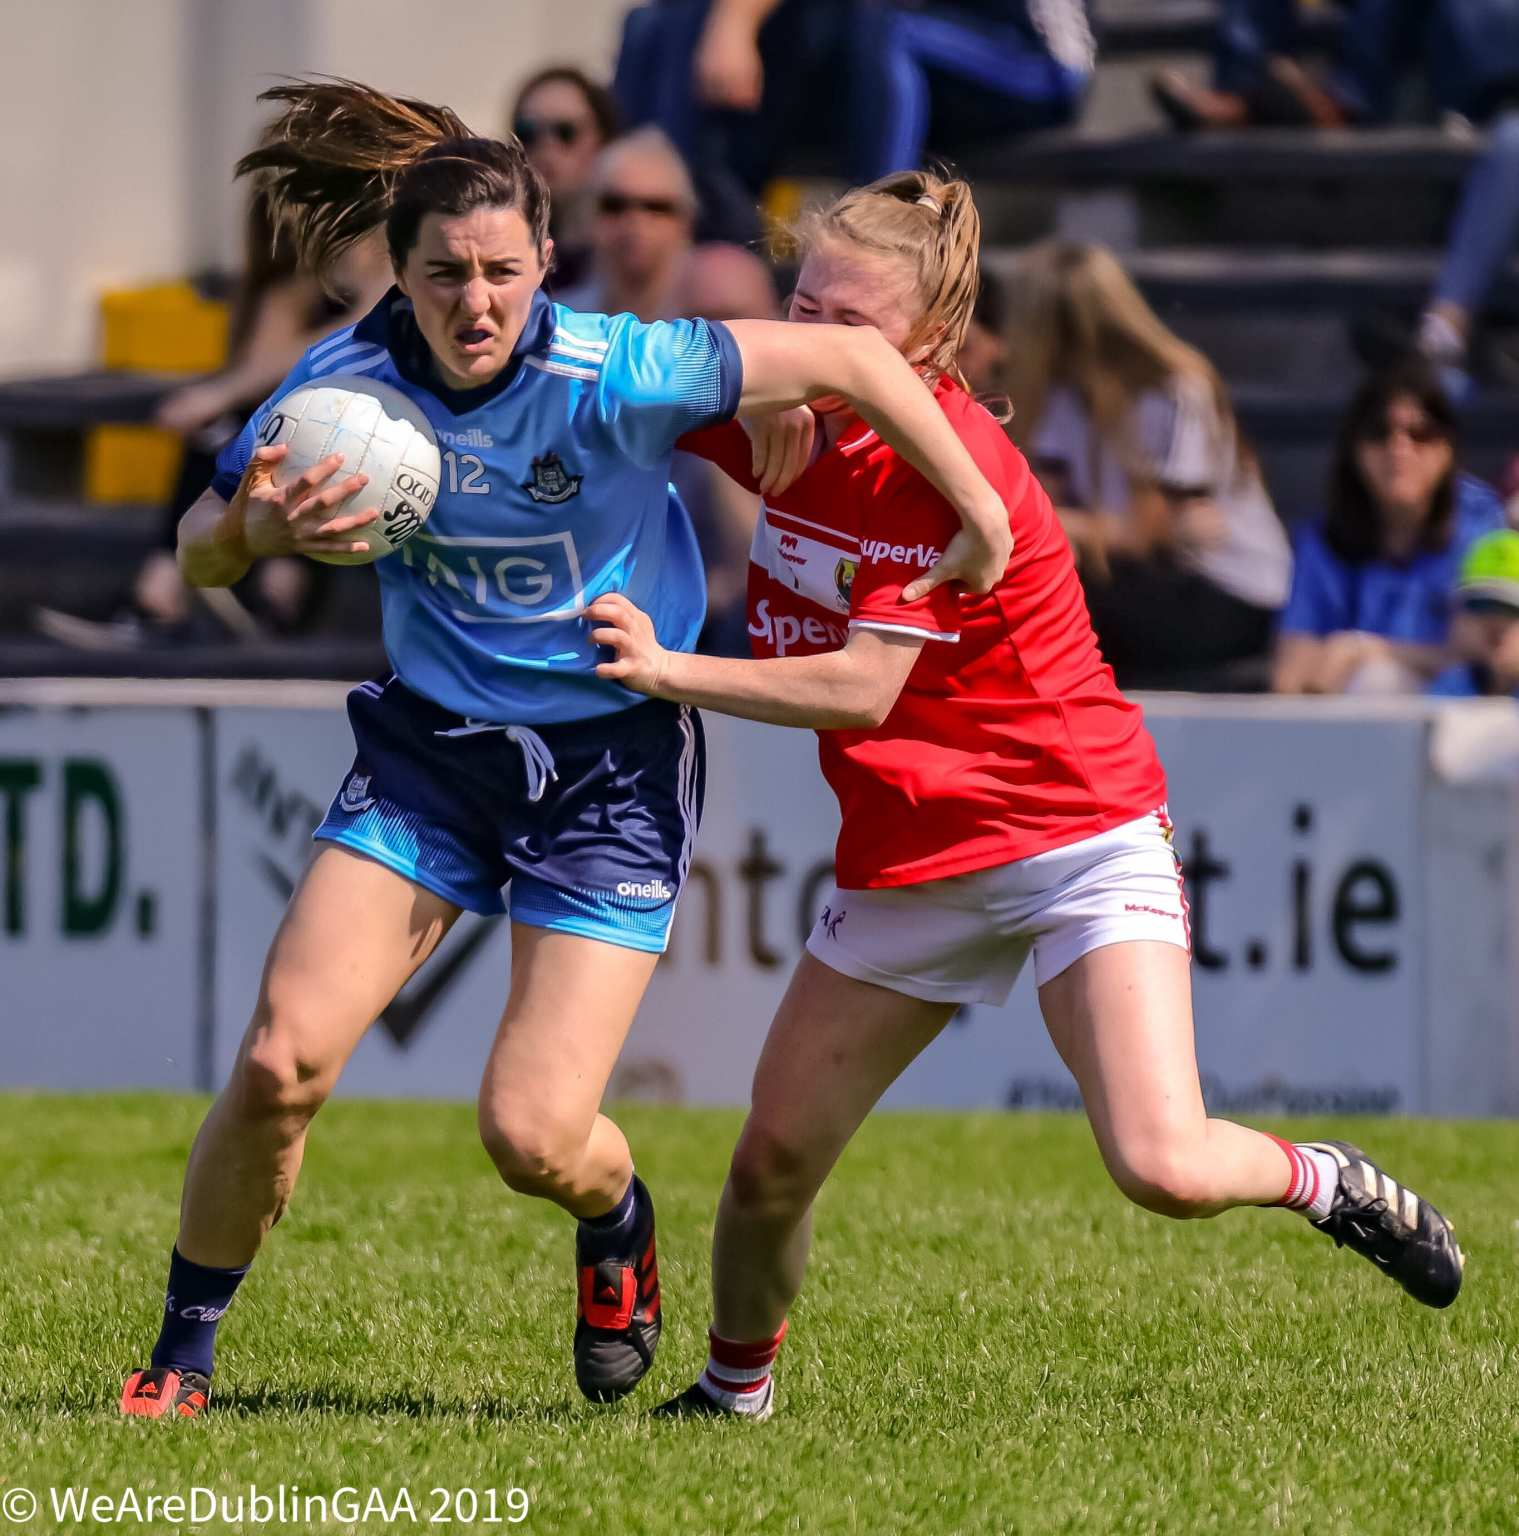 Dublin's Lyndsey Davey breaks the tackle of a Cork player, Dublin and Cork meet this weekend in the TG4 All-Ireland Semi Finals In Croke Park